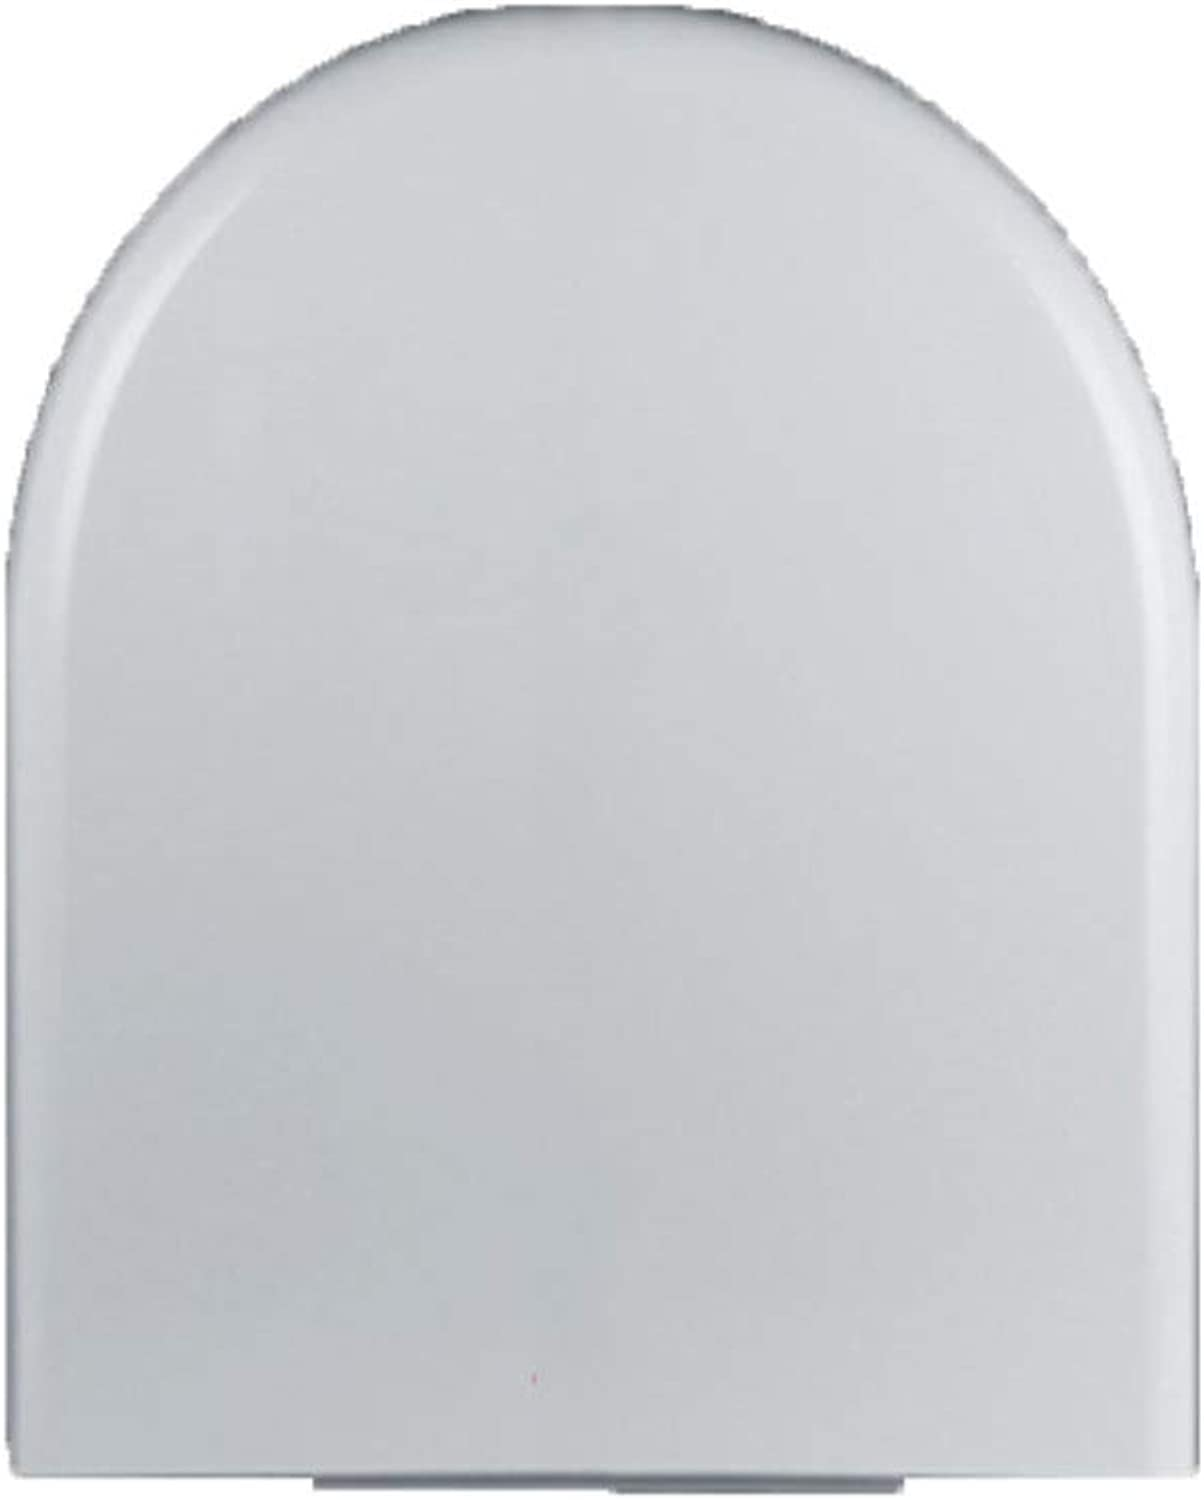 O, U, V Type Universal White PP Buffer Mute Thickening Toilet Seat Old-fashioned Cover Fittings Antibacterial Easy To Clean Antistatic Dustproof,D